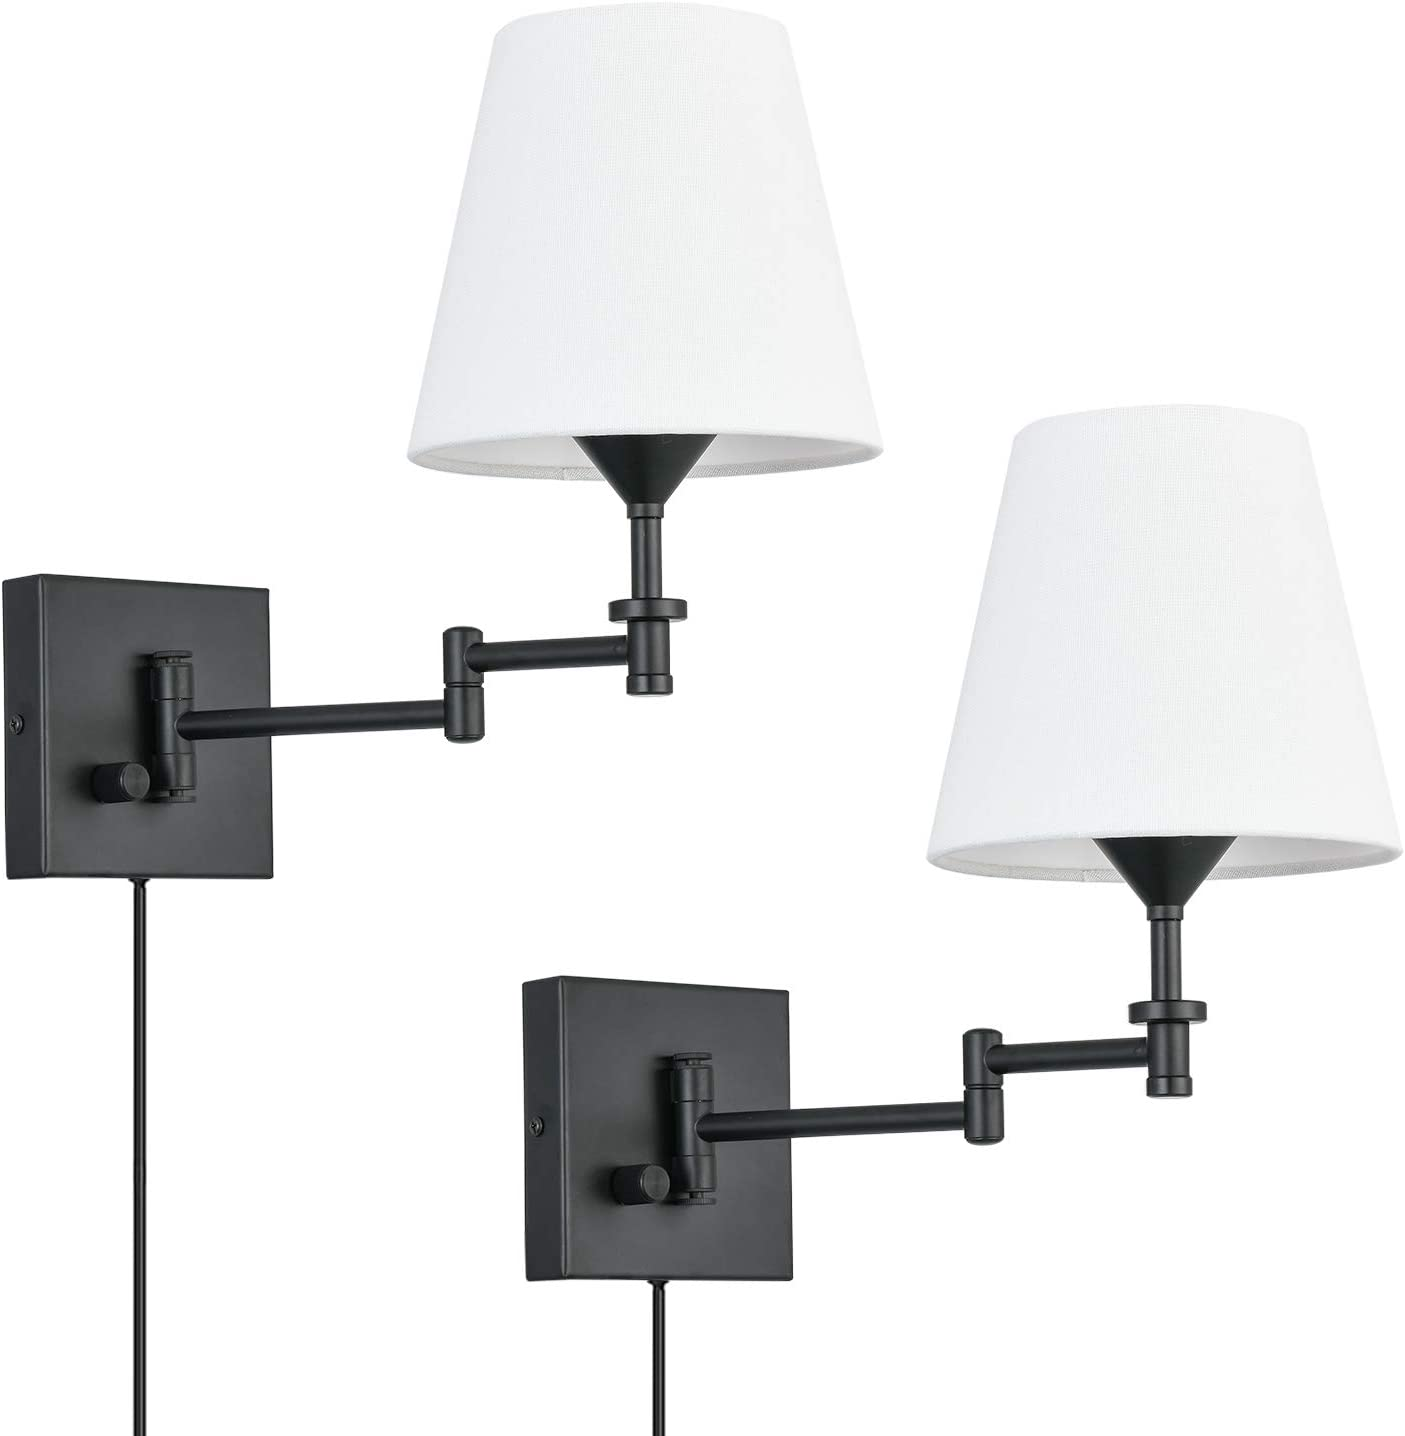 Pauwer Plug Choice in Wall Sconce Set La 2 Arm Adjustable Tampa Mall Swing of